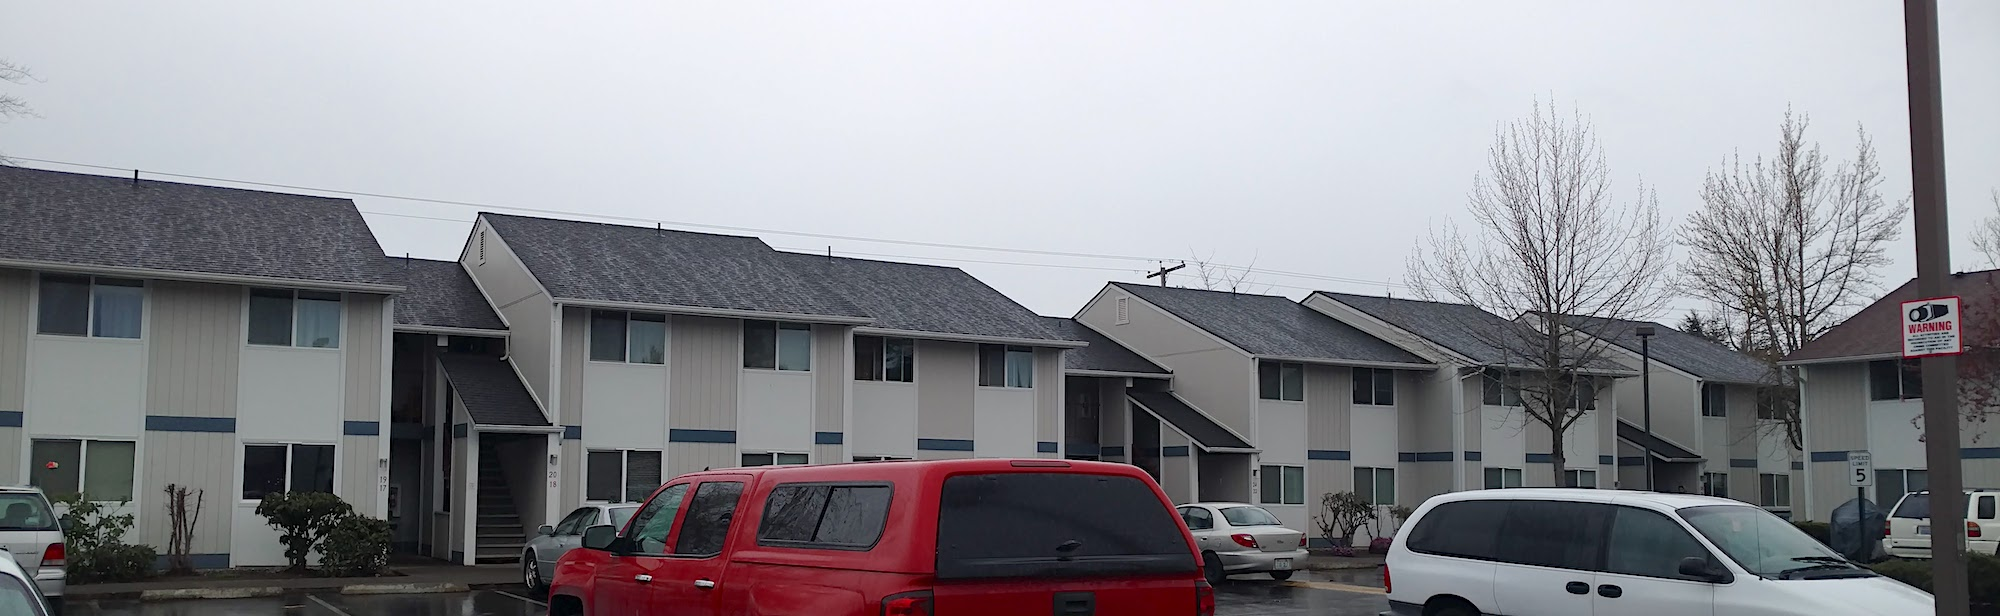 After the new asphalt shingle roofing system was installed.